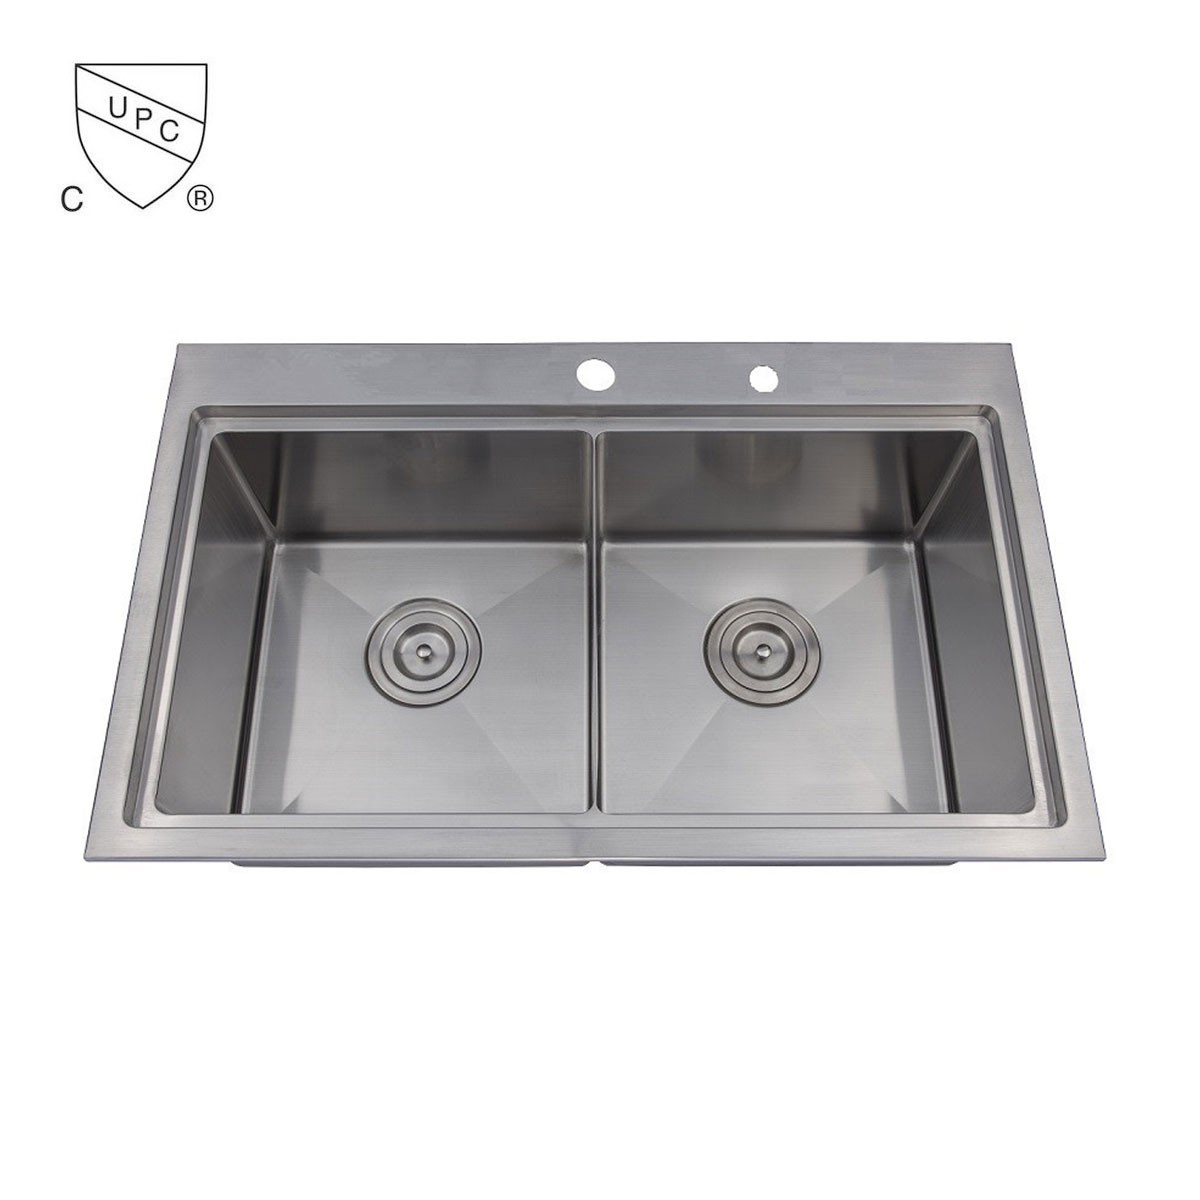 Stainless Steel Double Bowl Kitchen Sinks 30 x 185 in stainless steel double bowl kitchen sink dlr3018 r10 30 x 185 in stainless steel double bowl kitchen sink dlr3018 r10 workwithnaturefo